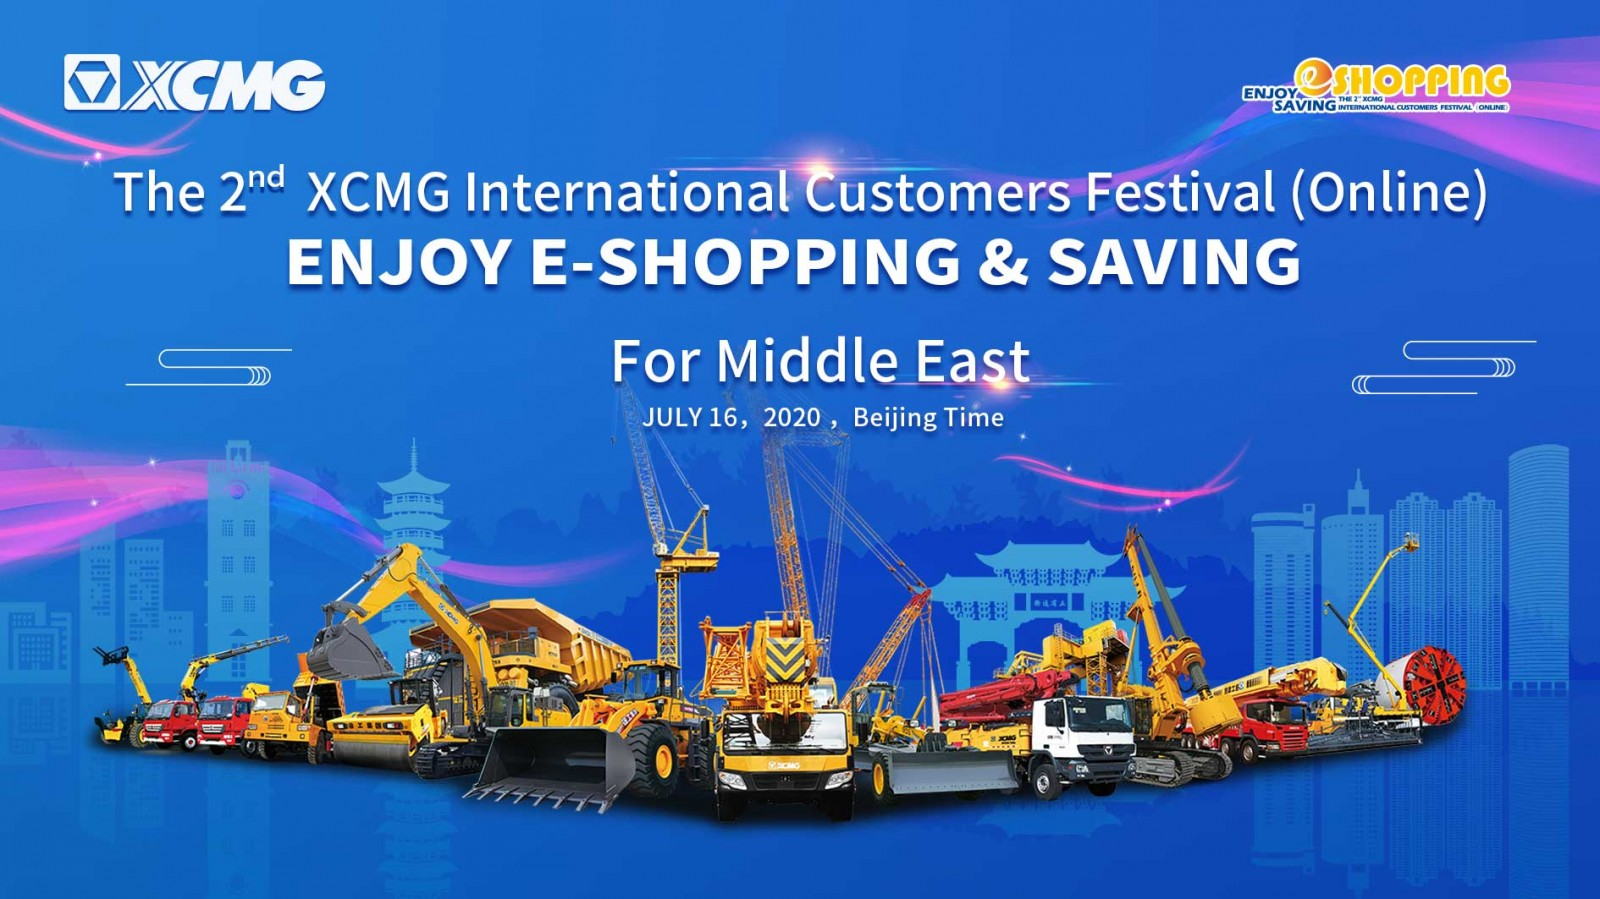 The Second XCMG International Customers Festival (Online)